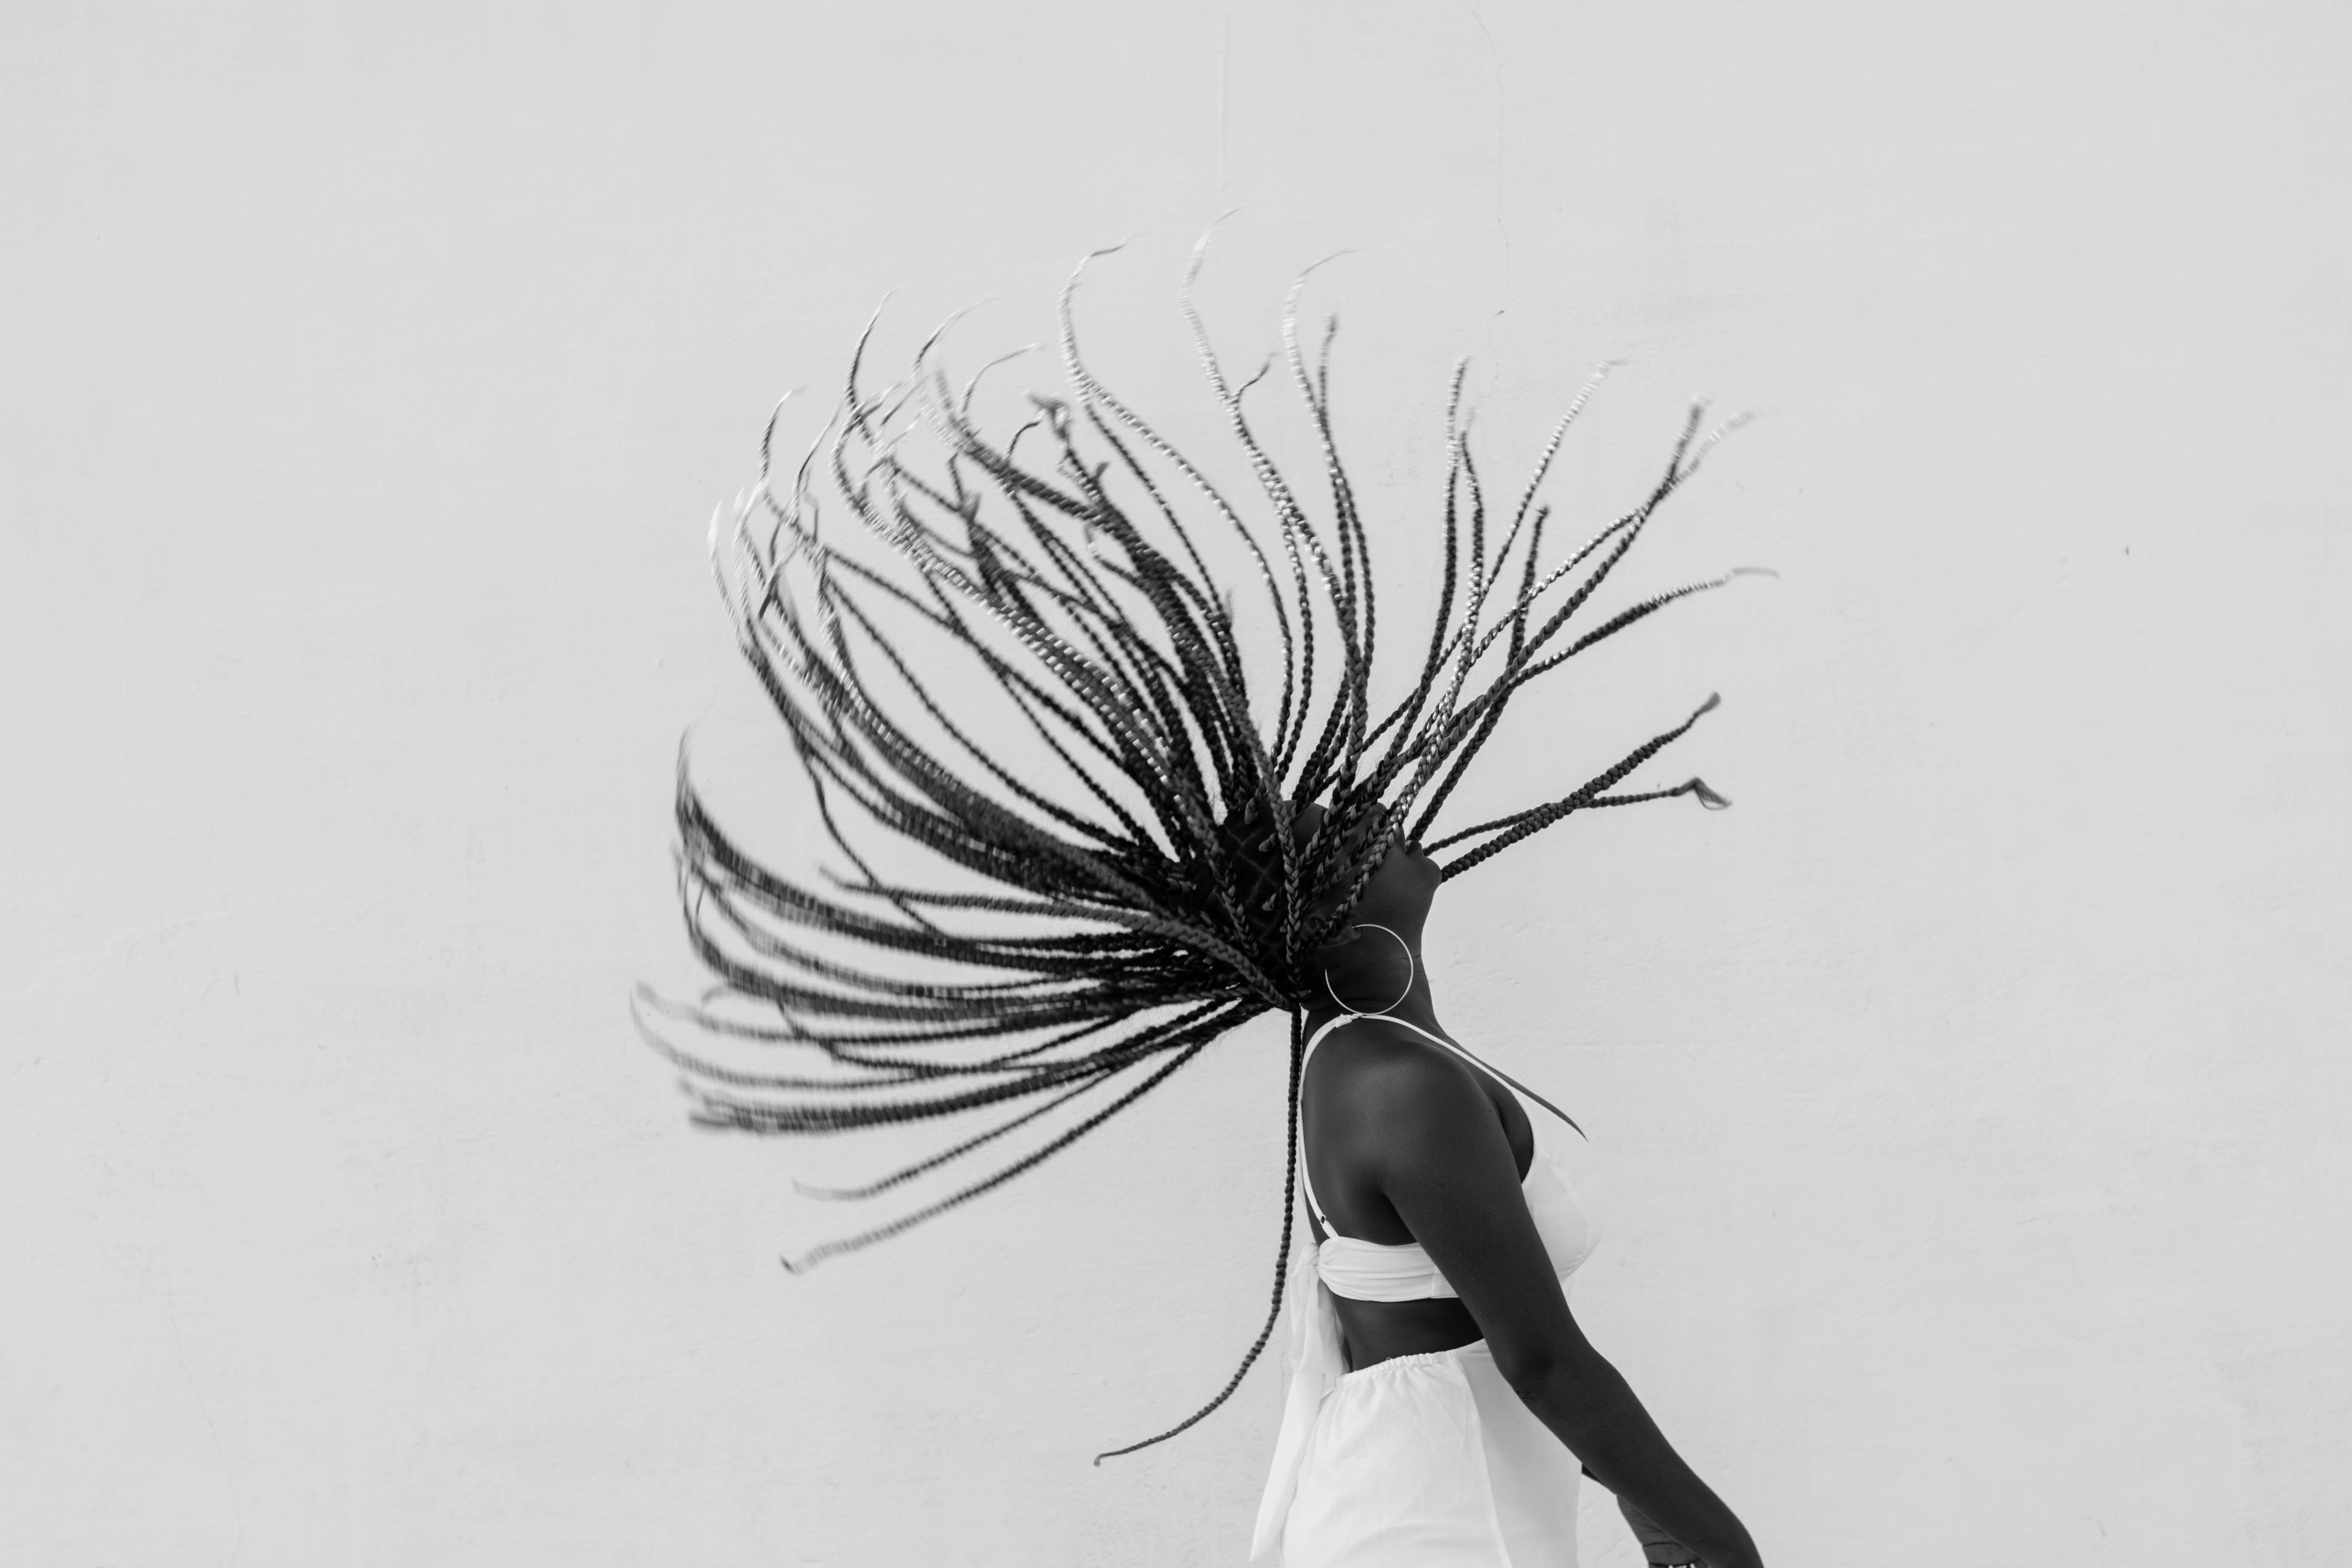 Woman In White Dress Flipping Hair